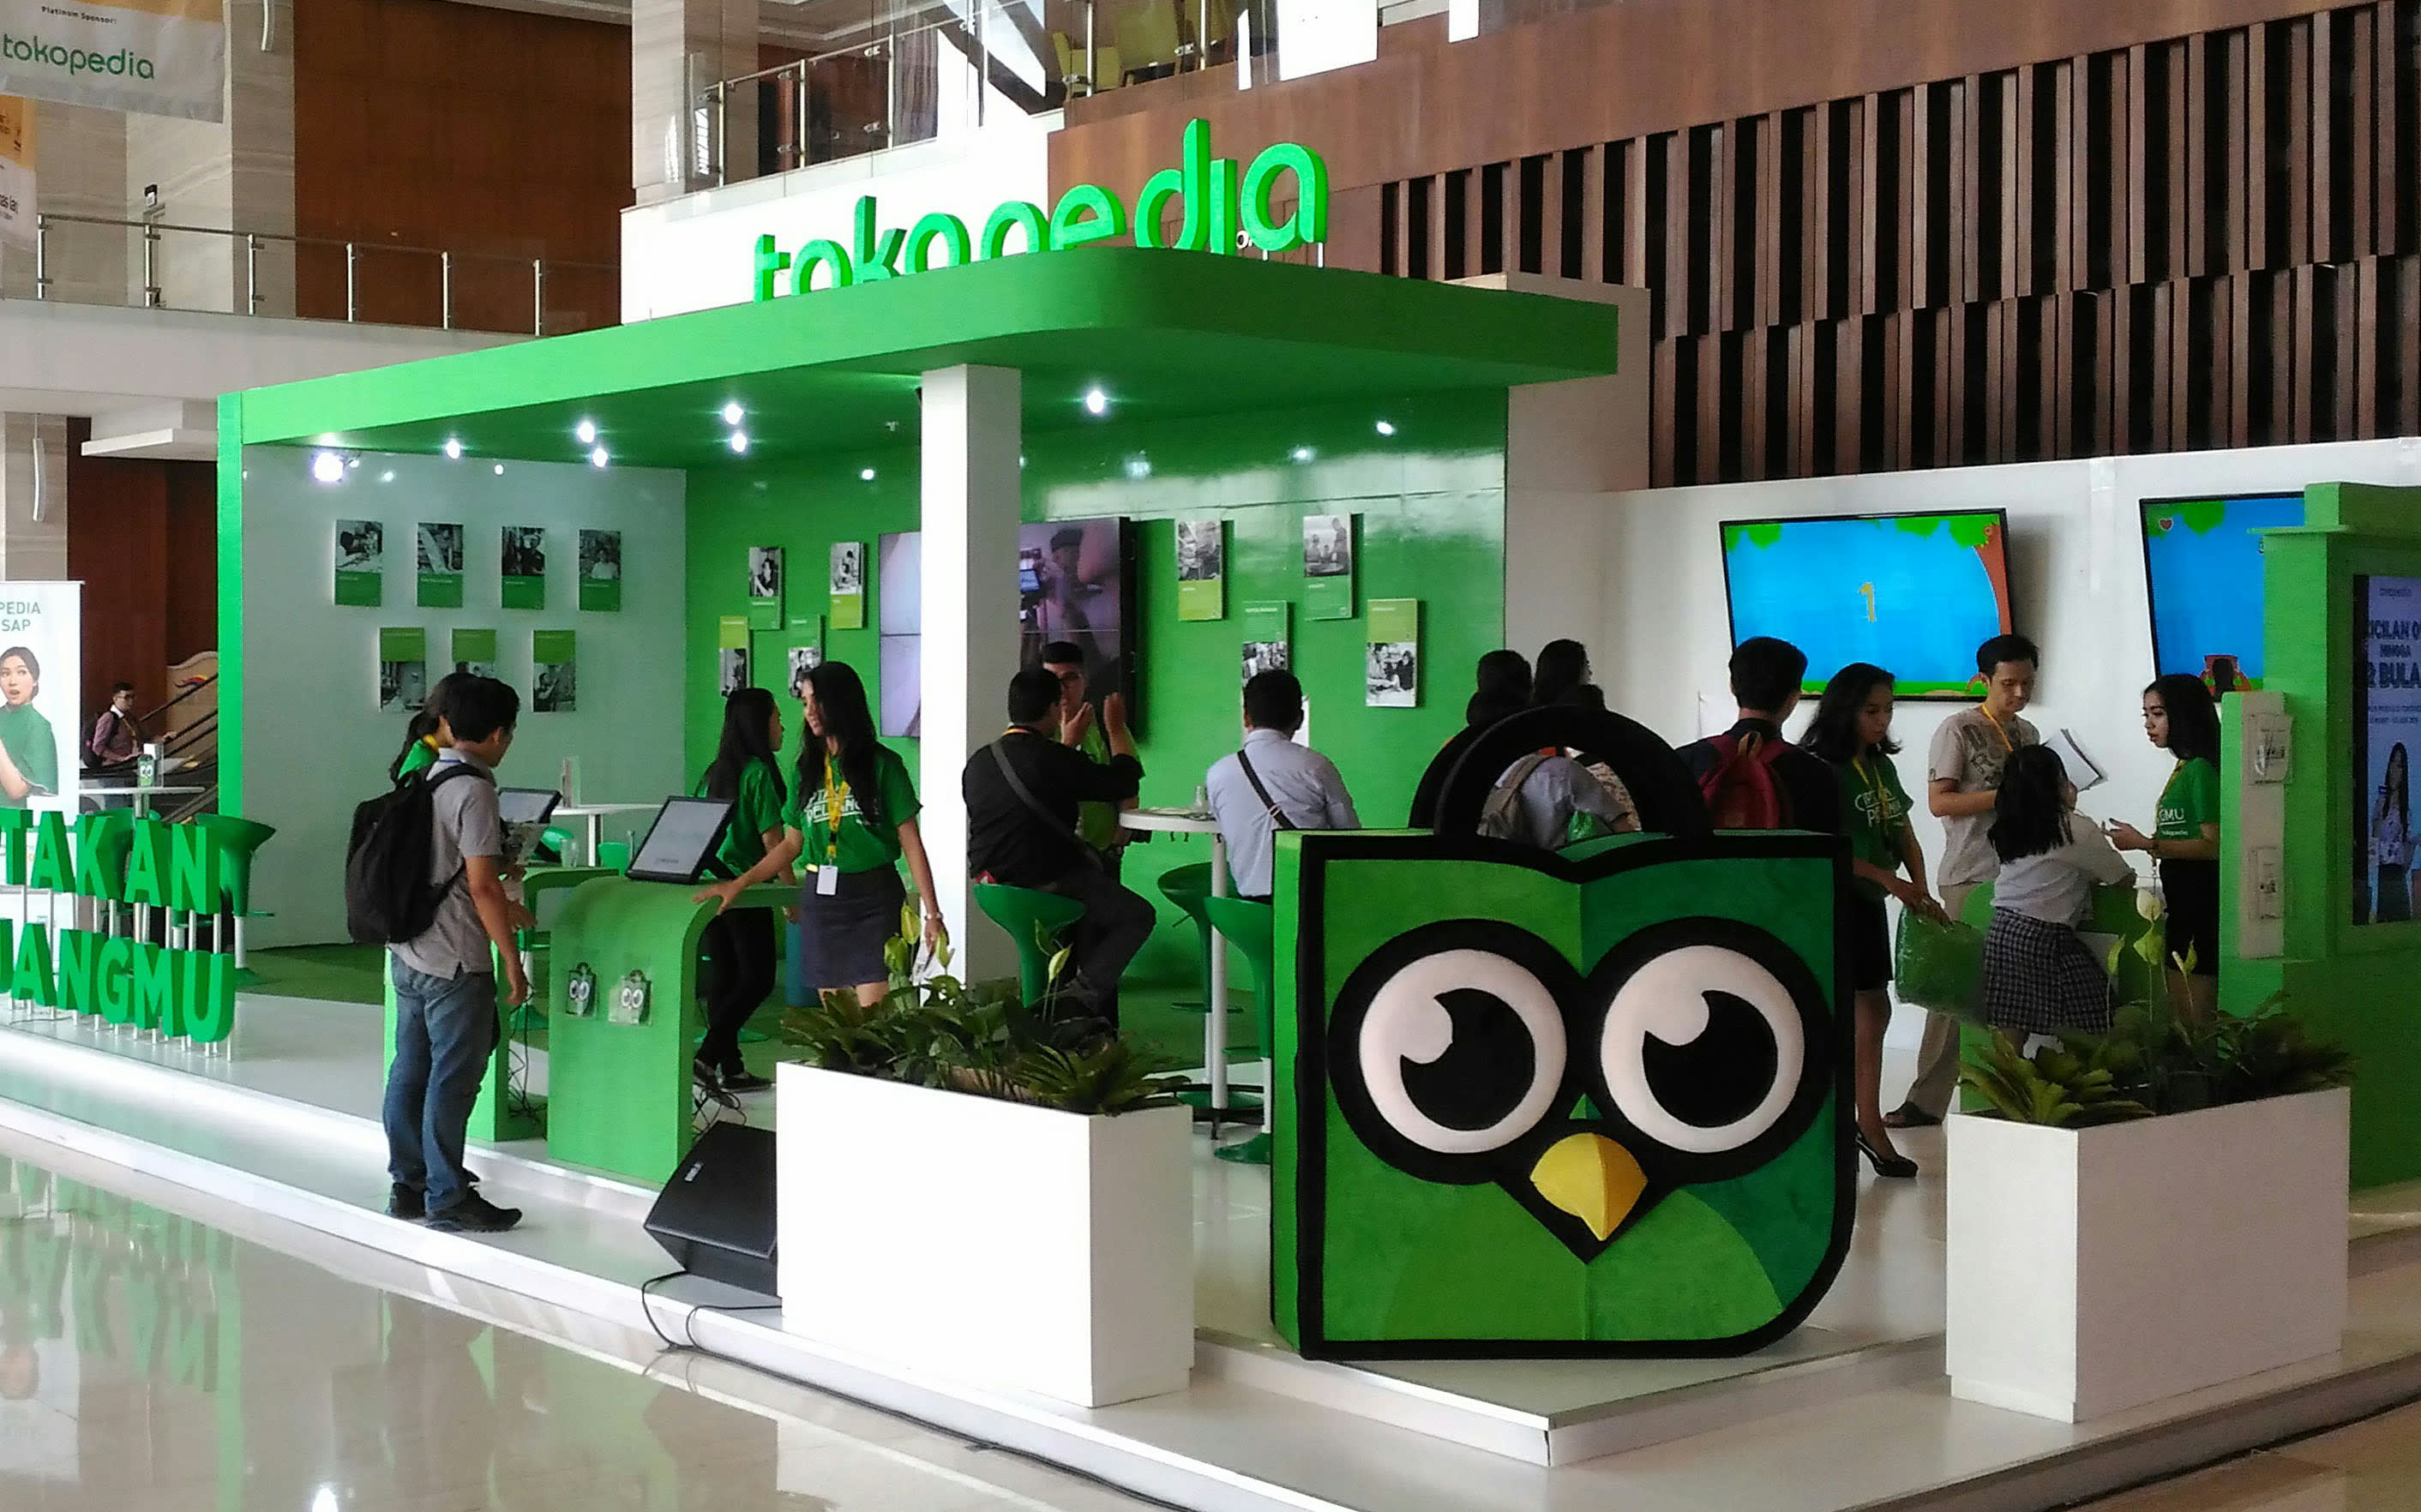 Online marketplace Tokopedia last year overtook Lazada Indonesia as the country's most popular internet shop. Image: Erwida Maulia/Nikkei Asian Review